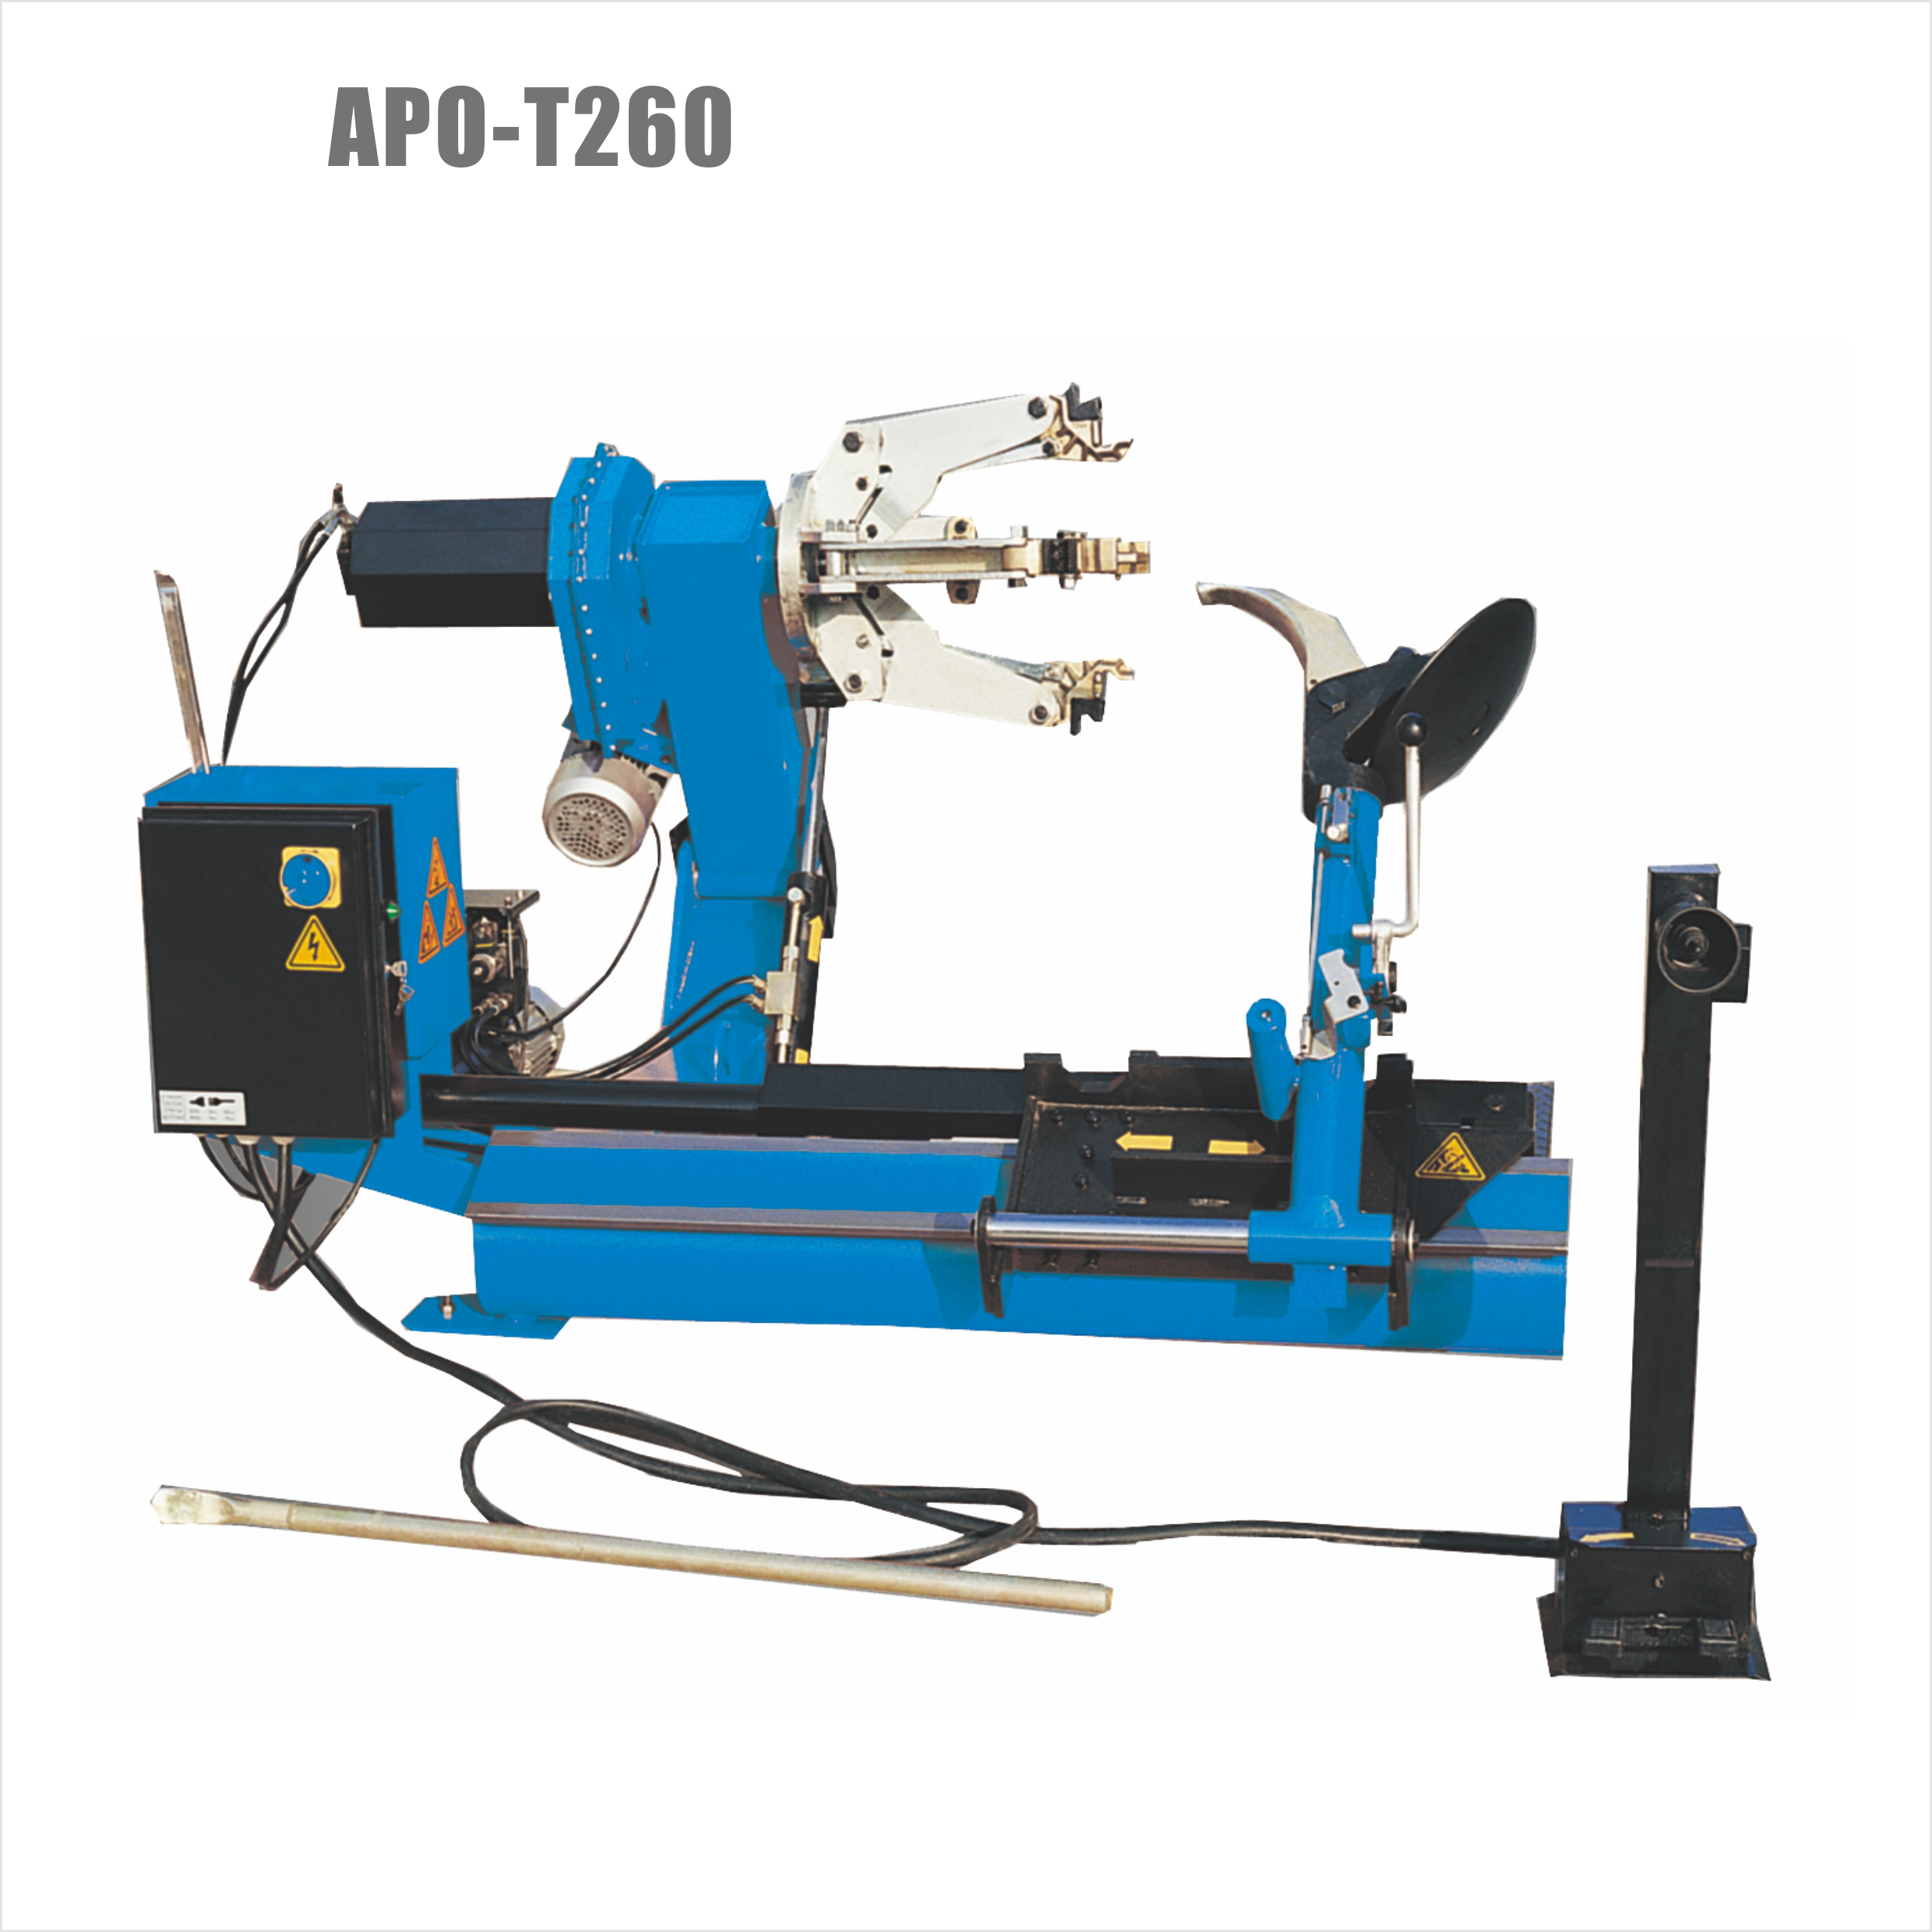 APO-T260 Truck Tire Changer